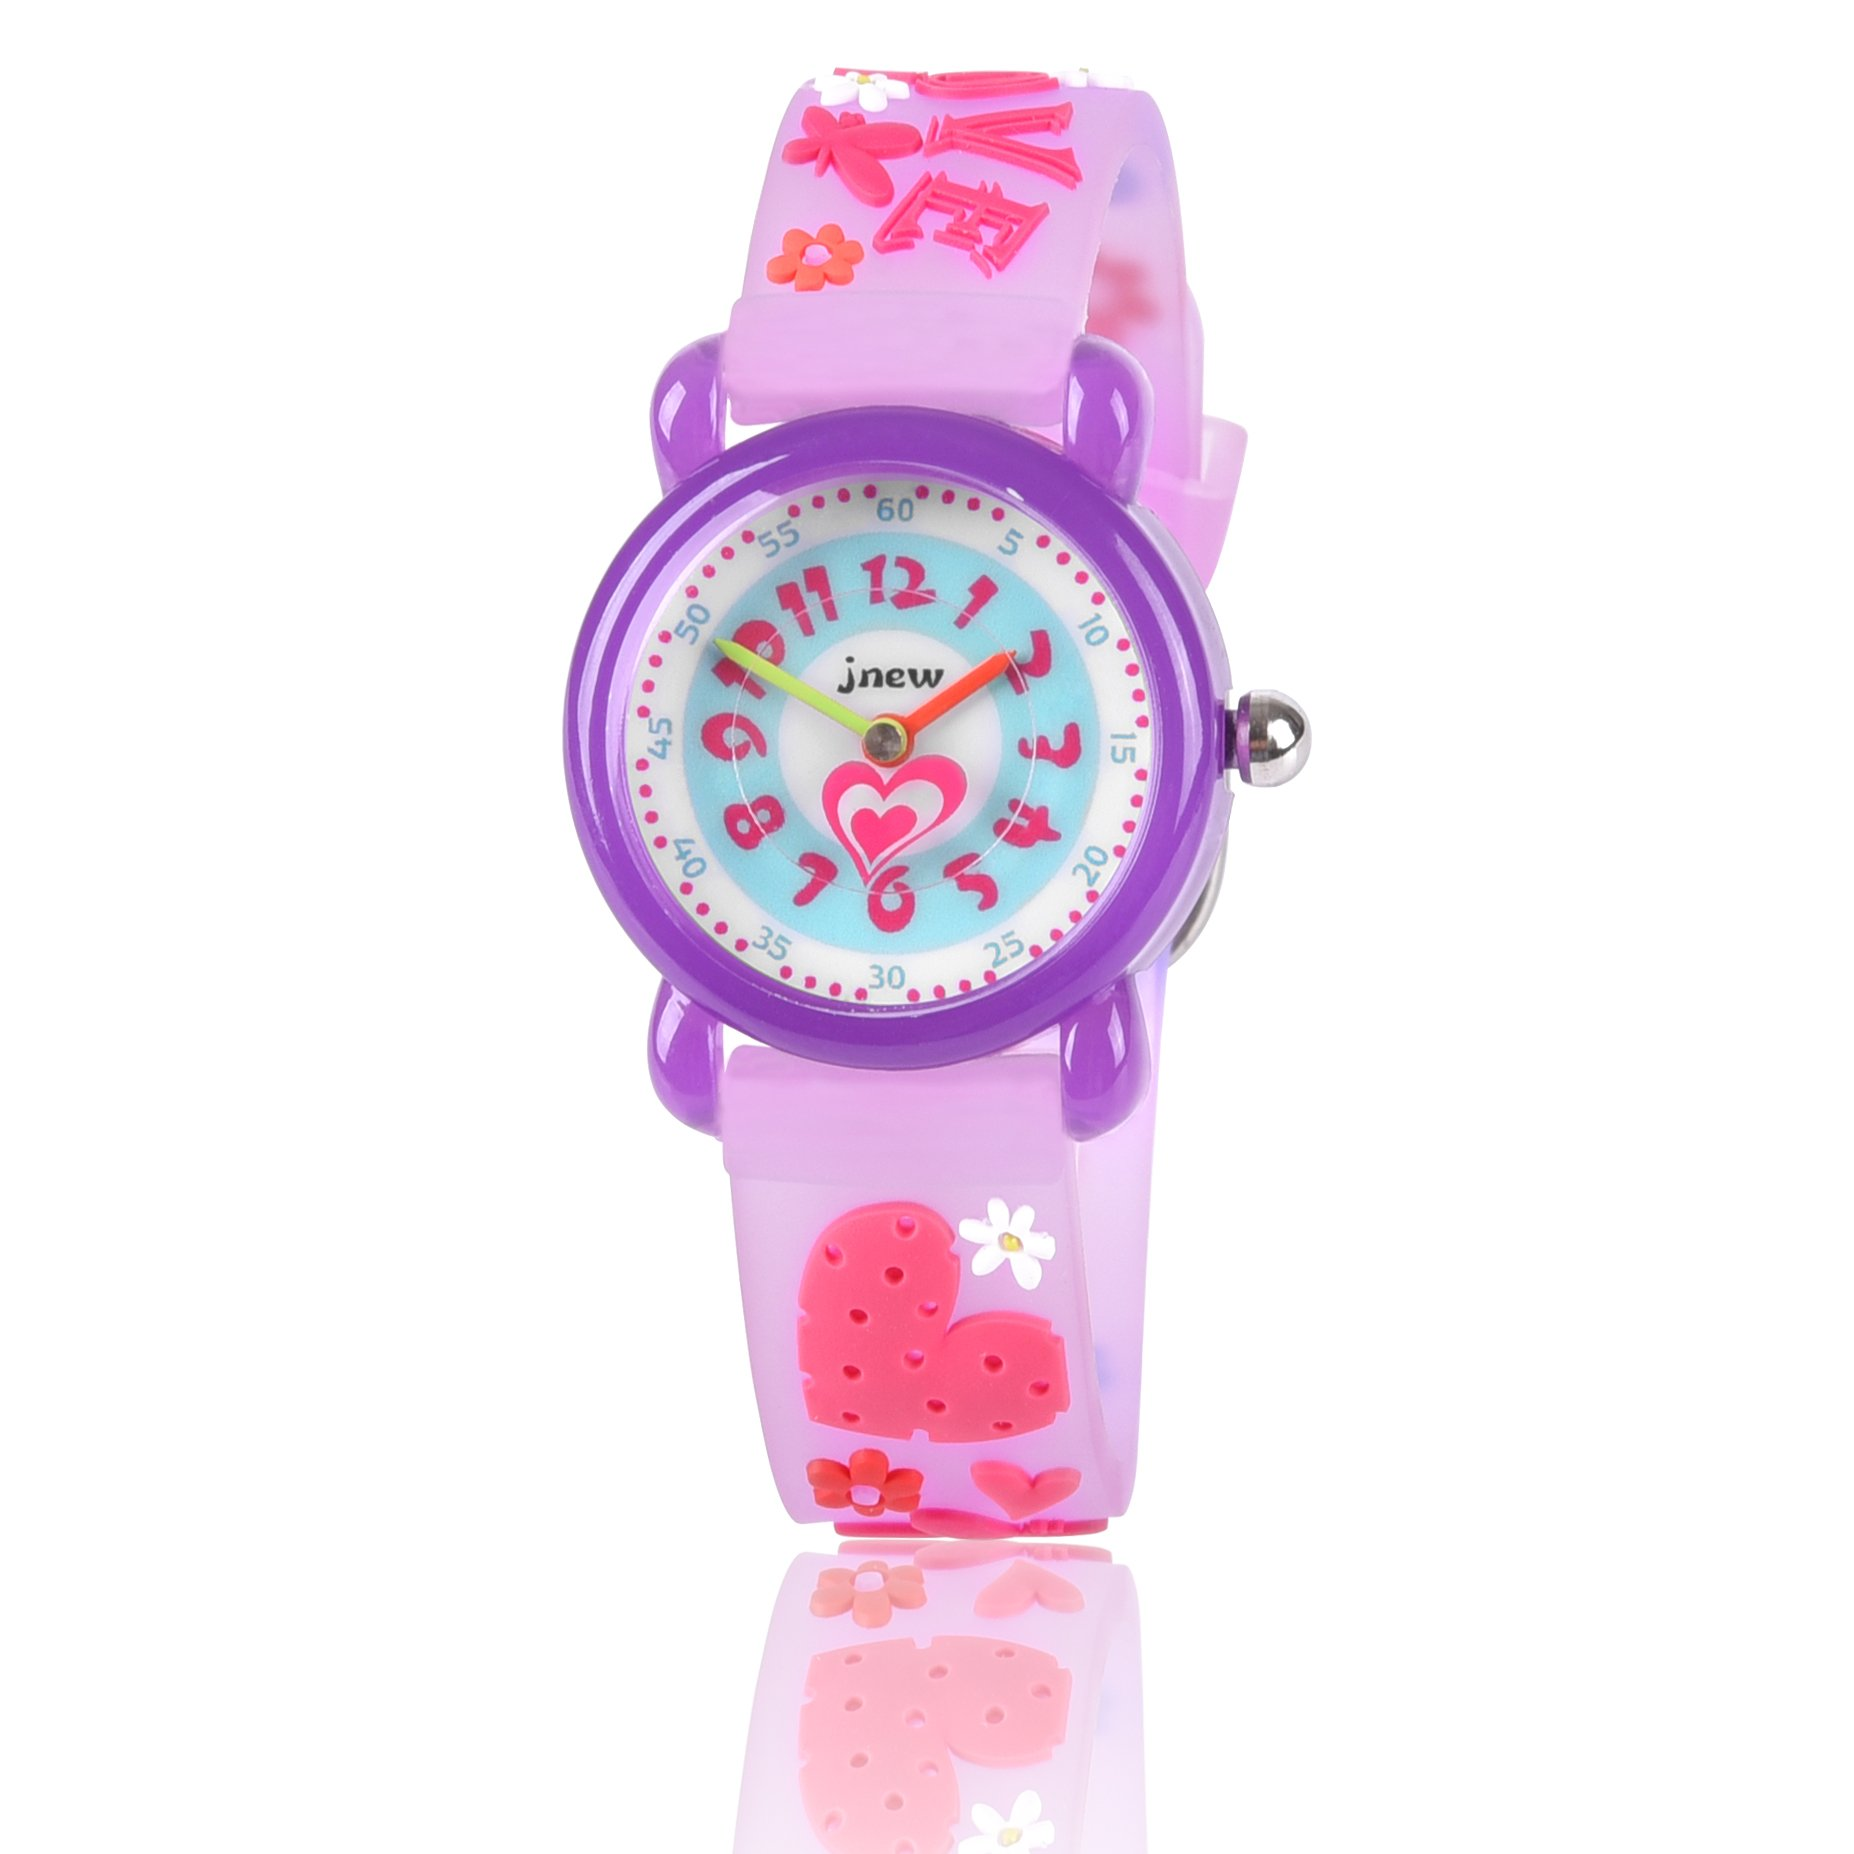 Gifts for 4 5 6 7 8 9 10 Year Old Girls, Mico Girl Watch Toys for 3-10 Year Old Girl Gift Birthday Present by Kids Gift (Image #1)